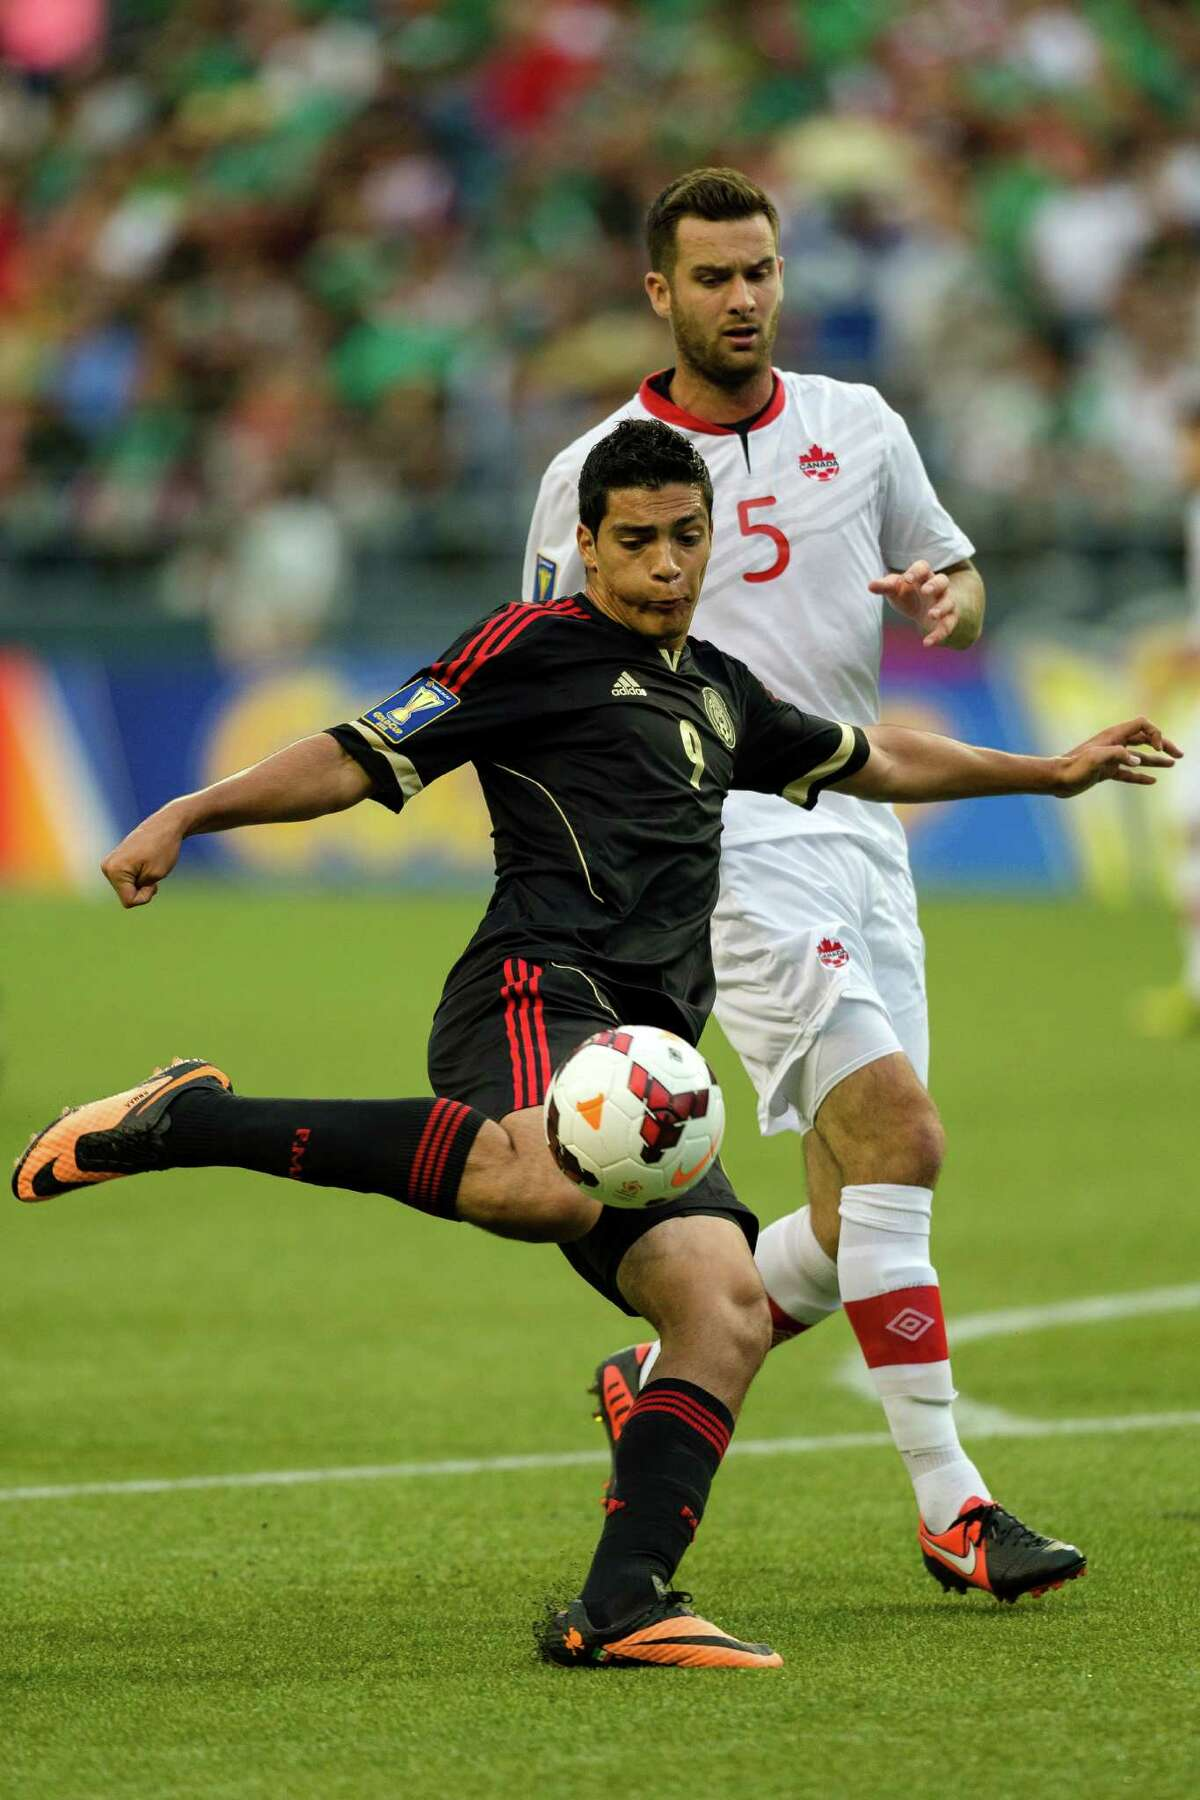 Raul Jimenez, foreground, prepares to shoot on the Canadian goal during the first half of the Mexico versus Canada CONCACAF Gold Cup soccer match Thursday, July 11, 2013, at CenturyLink Field in Seattle. Mexico led Canada 1-0 at the end of the first half and later won the game 2-0.